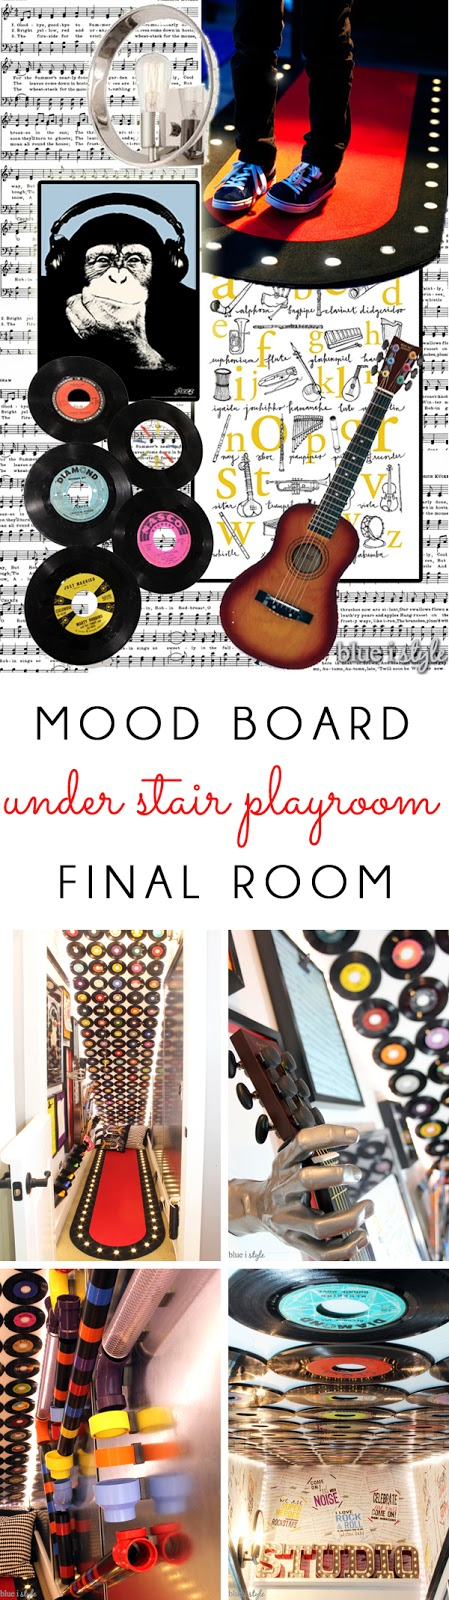 Rock and Roll Under Stair Playroom mood board and photos